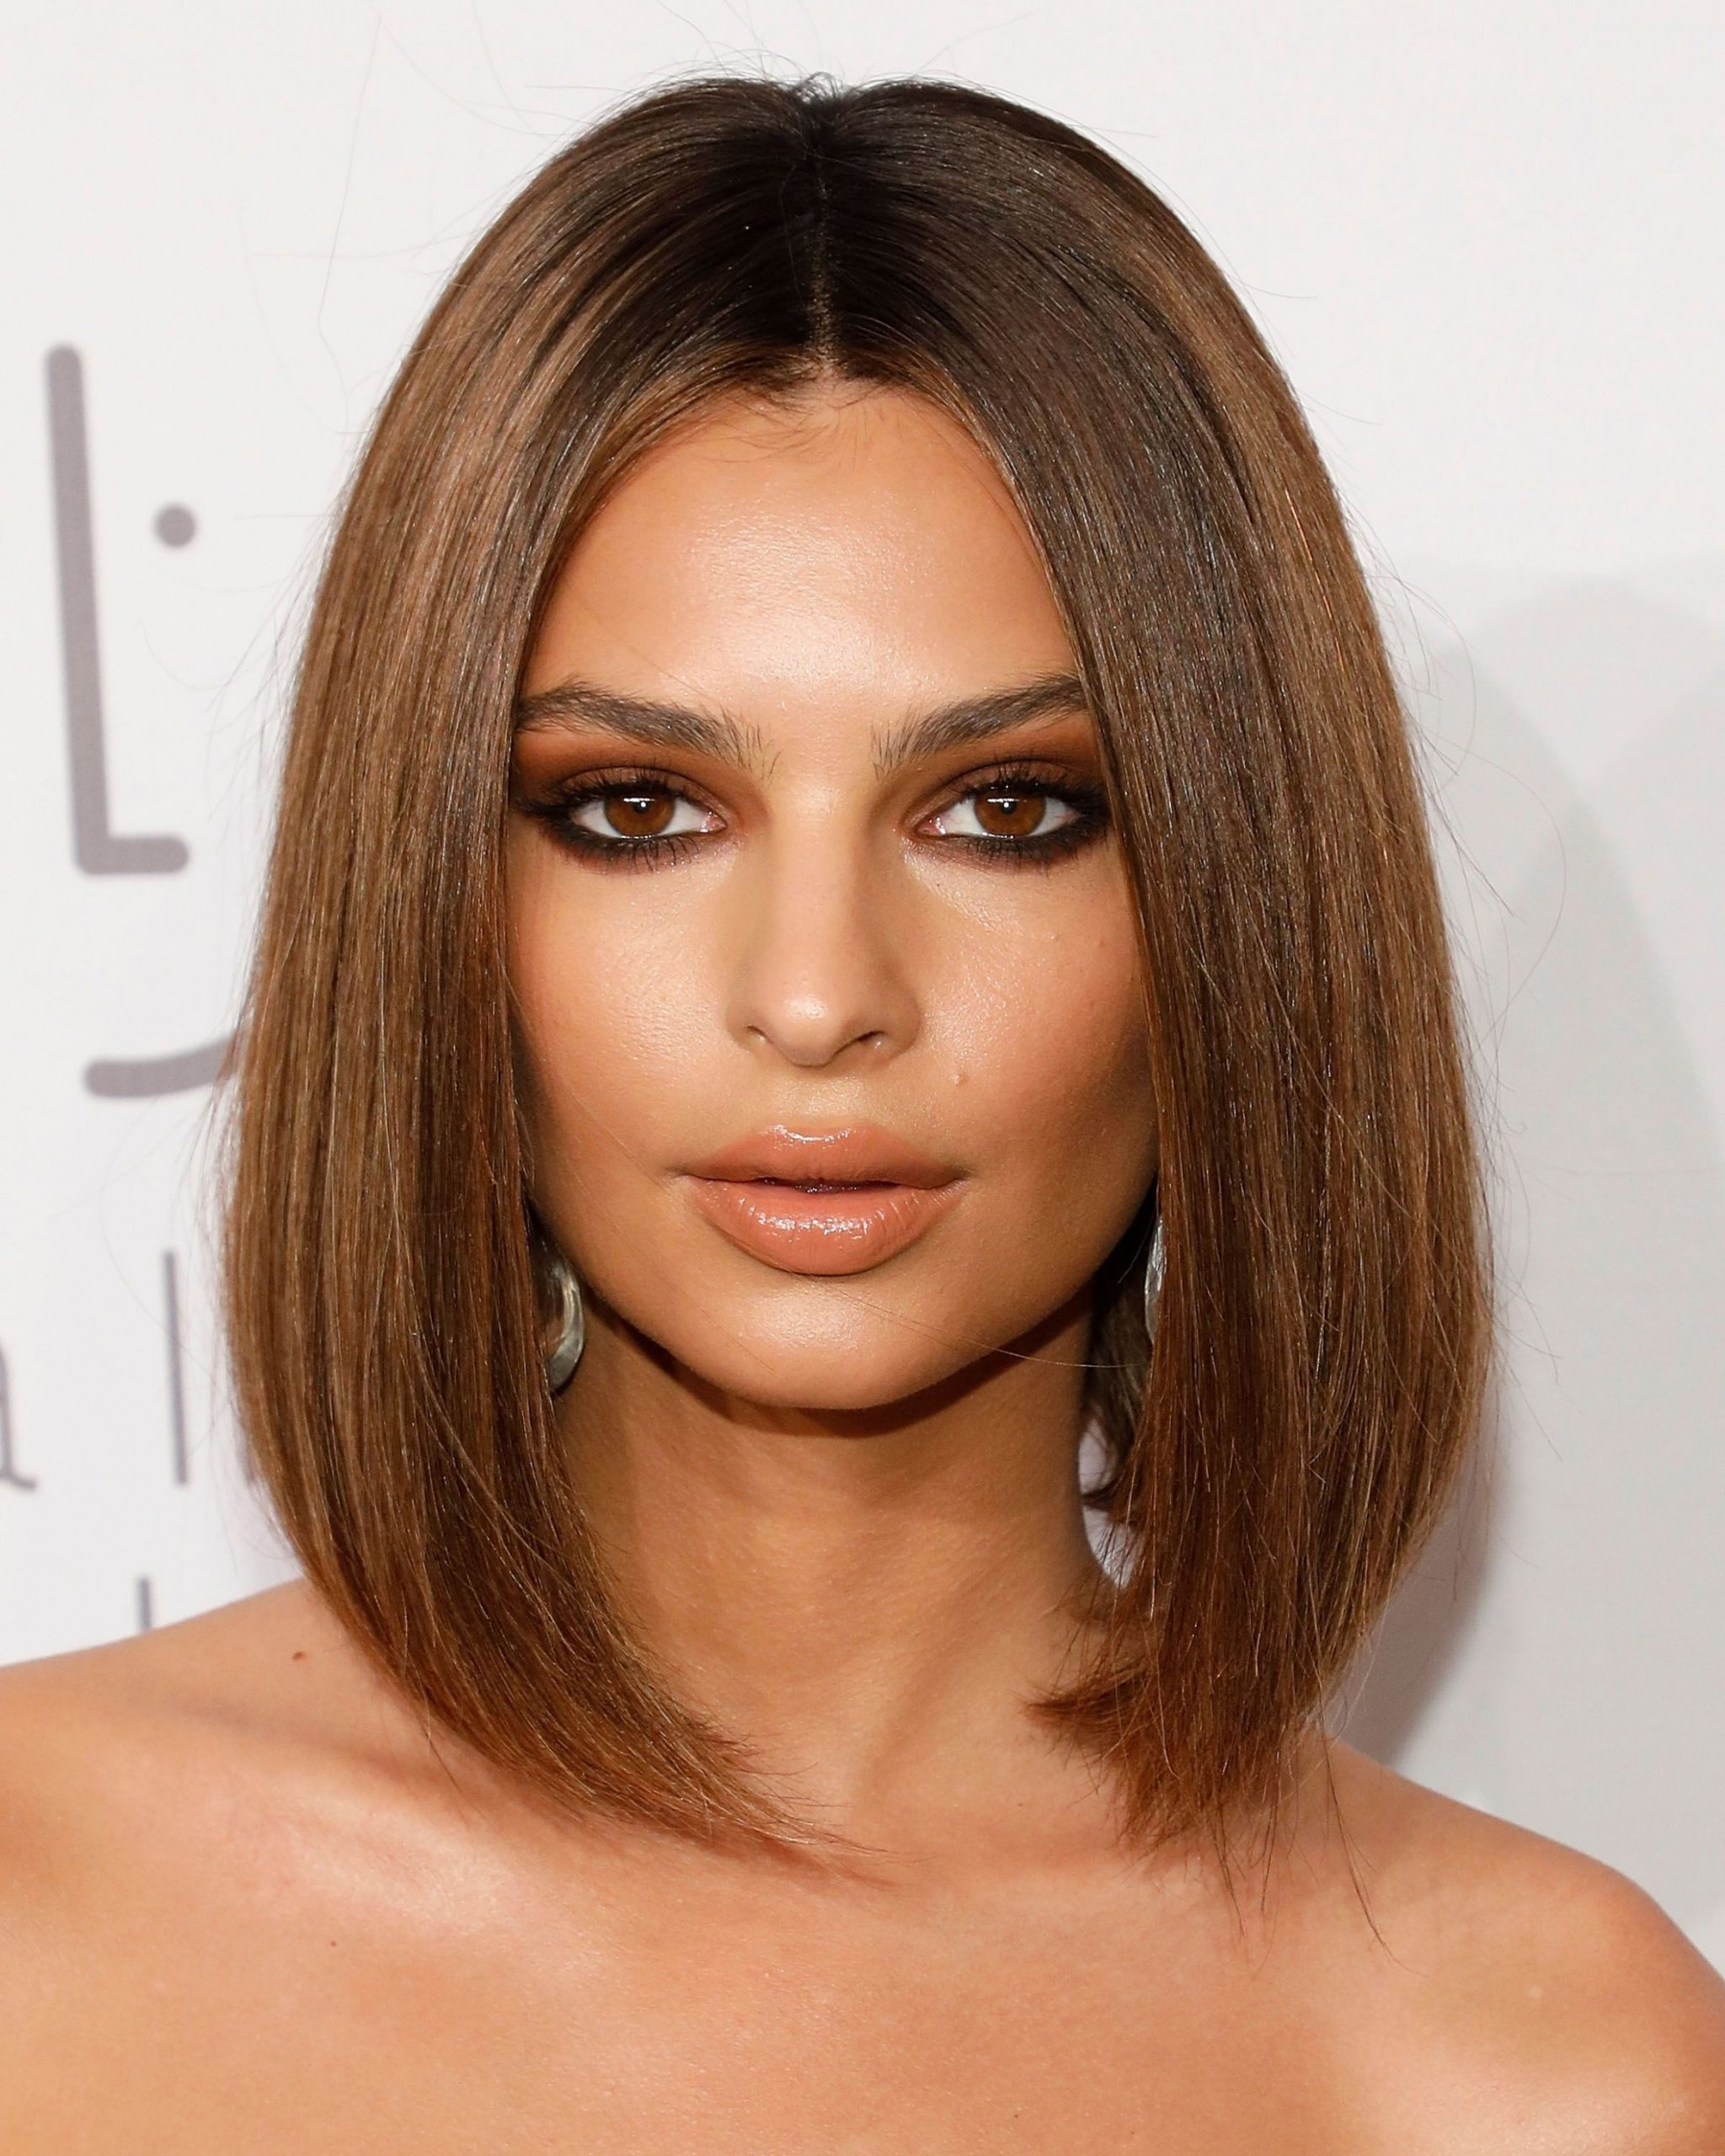 8 Best Long Bob Haircut And Hairstyle Ideas Of 8 Wavy Lob Hairstyles